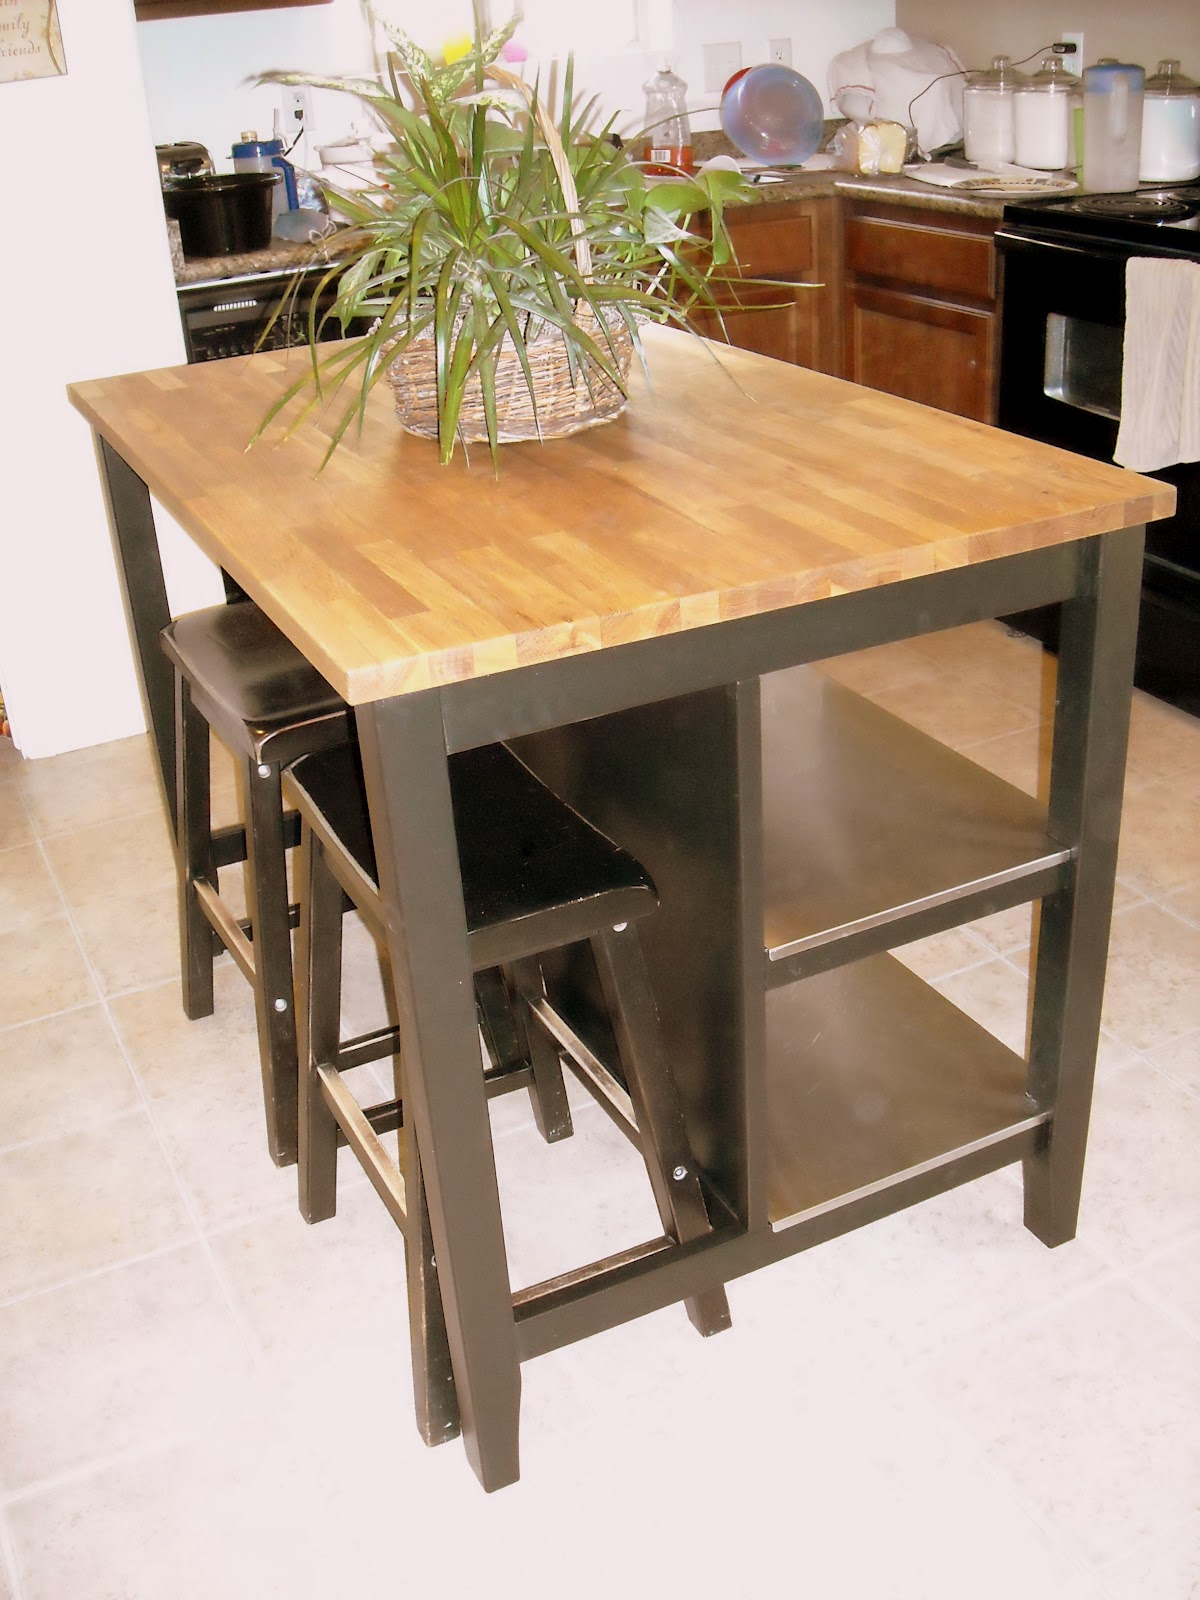 ikea stenstorp kitchen island table